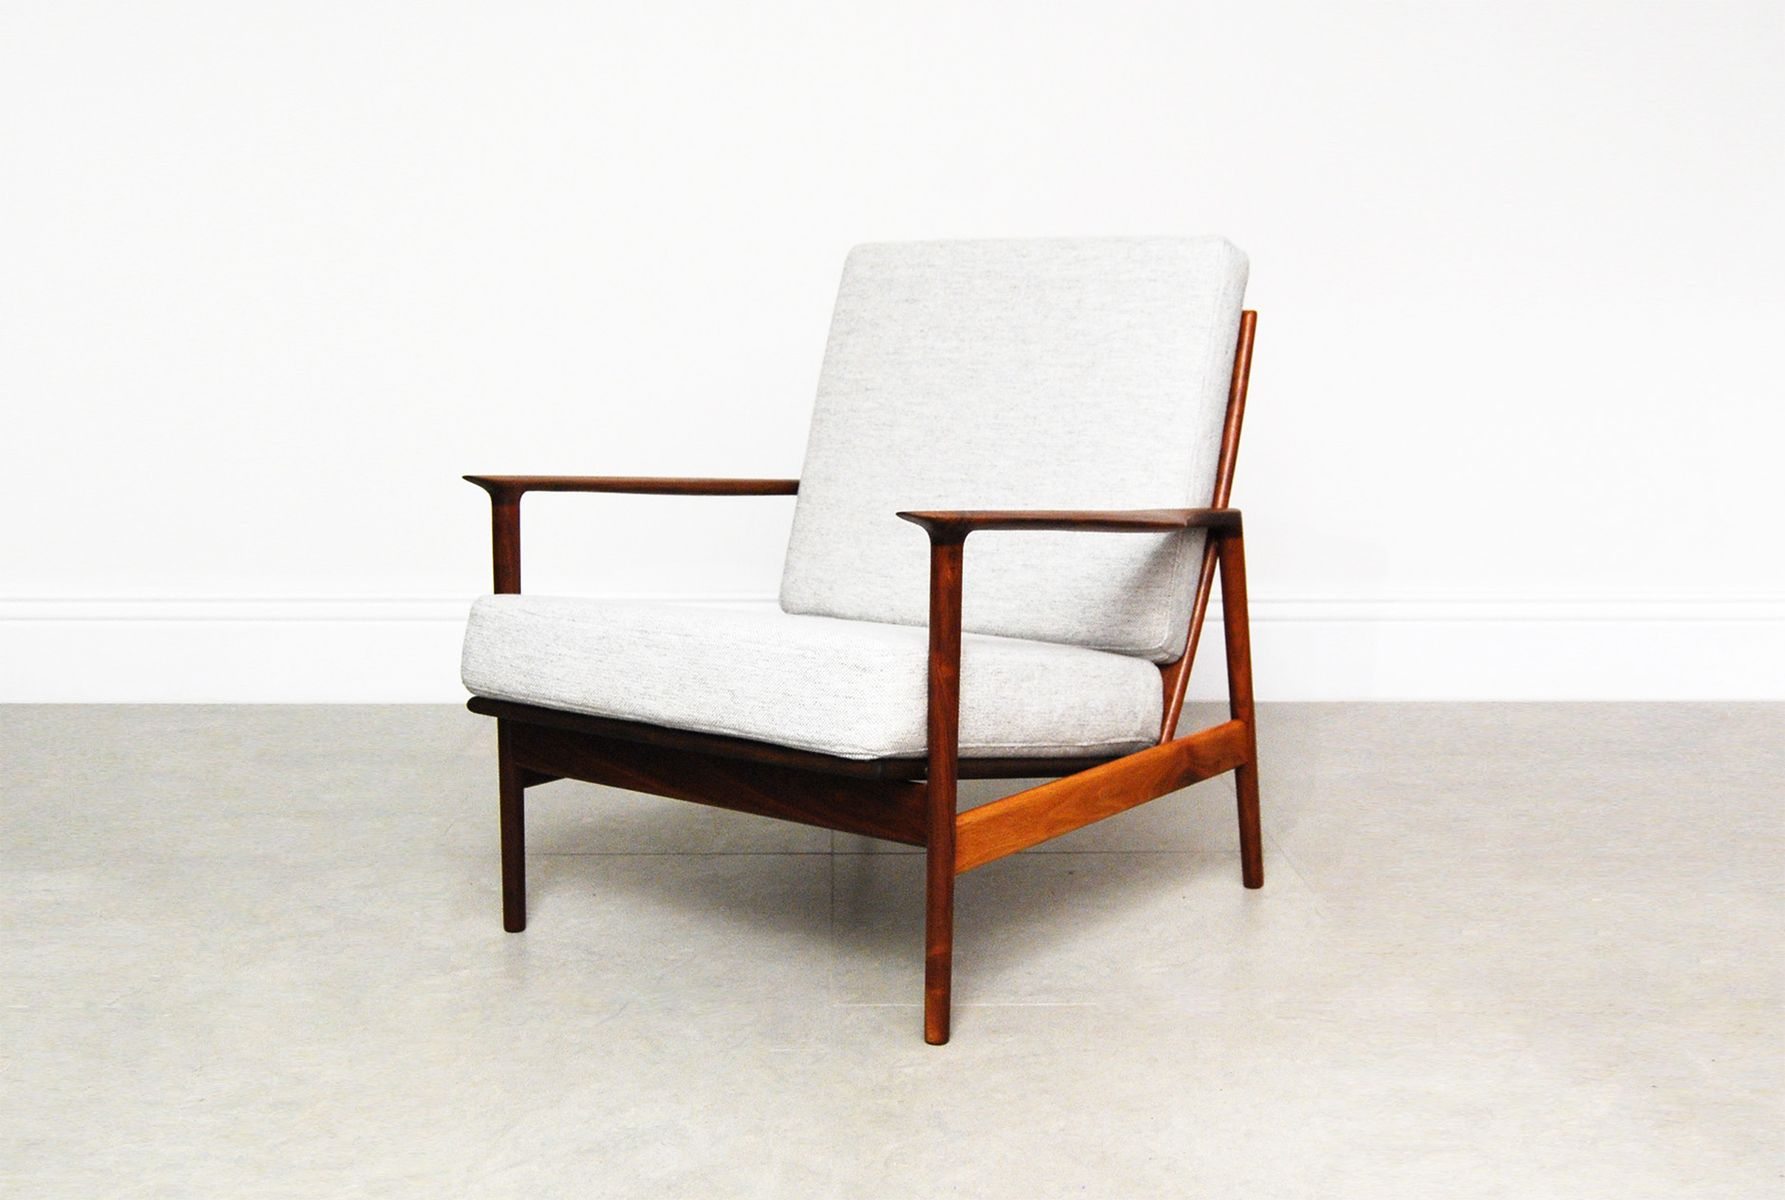 Lounge chair by ib kofod larsen for selig for sale at pamono - Selig z chair for sale ...